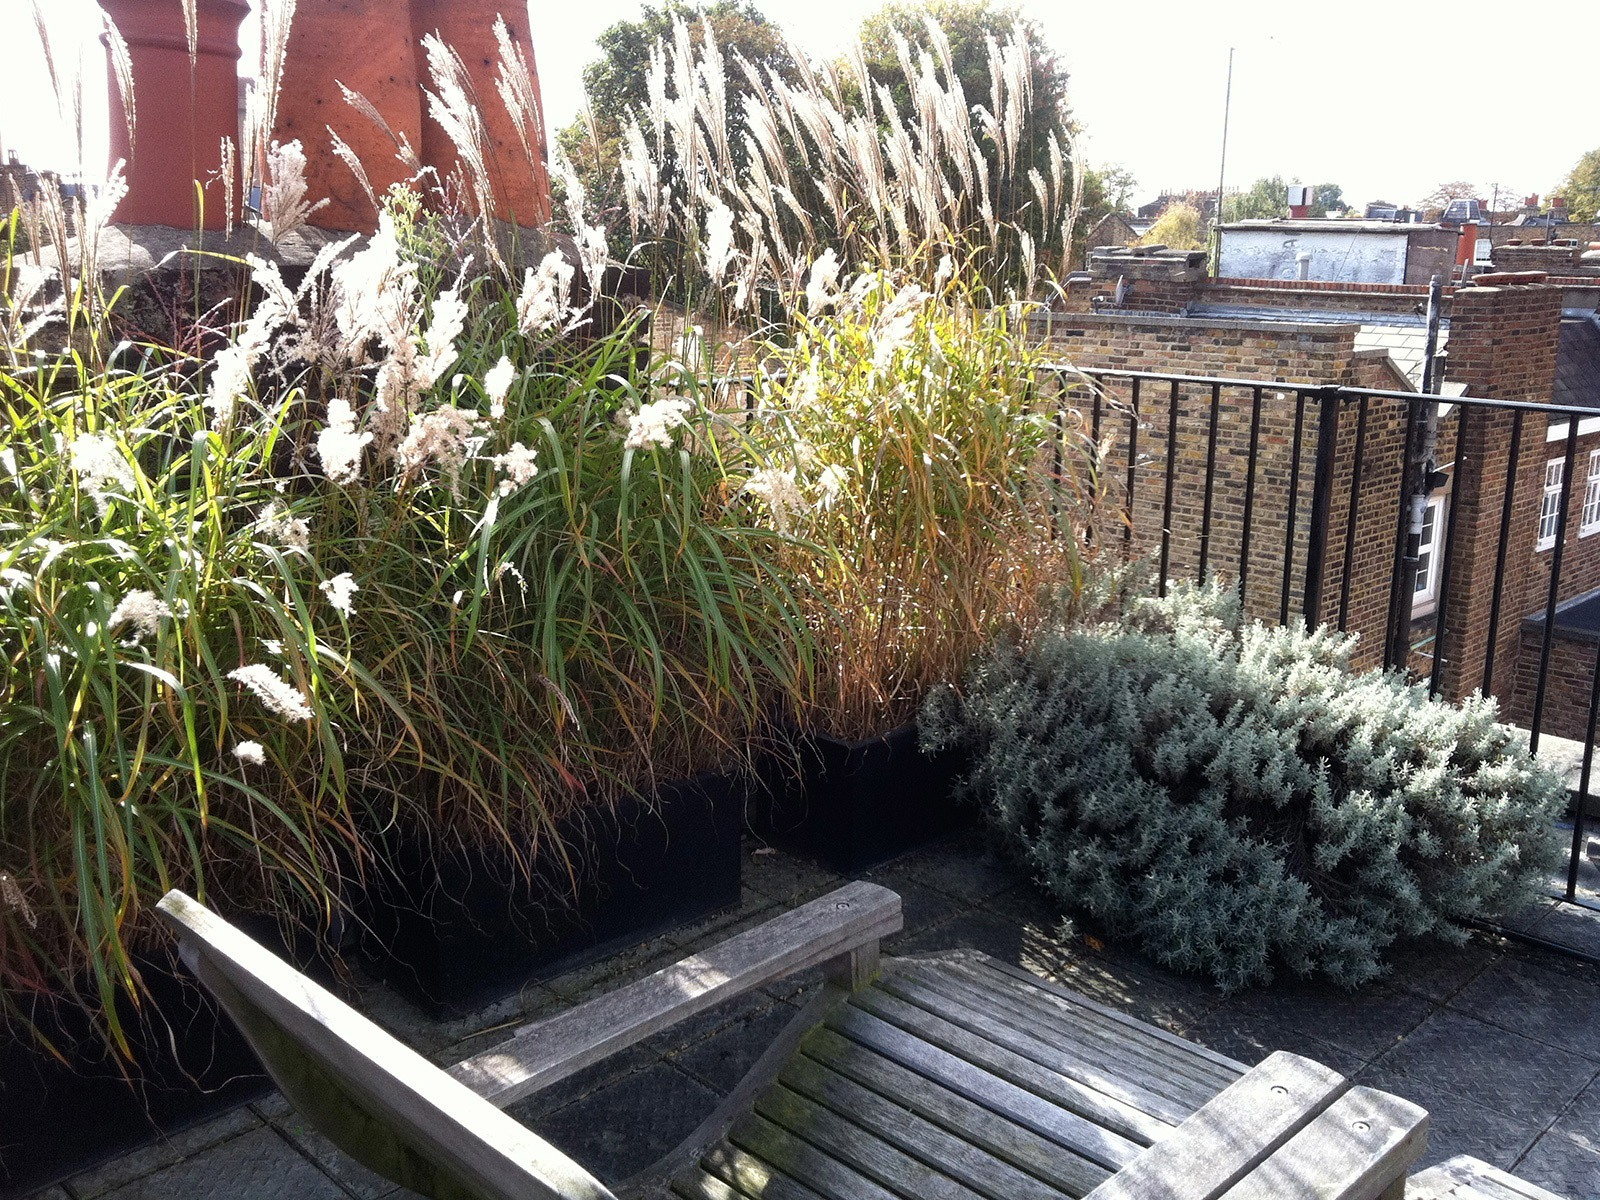 A tiny rooftop space shared with glorious ornamental grasses.